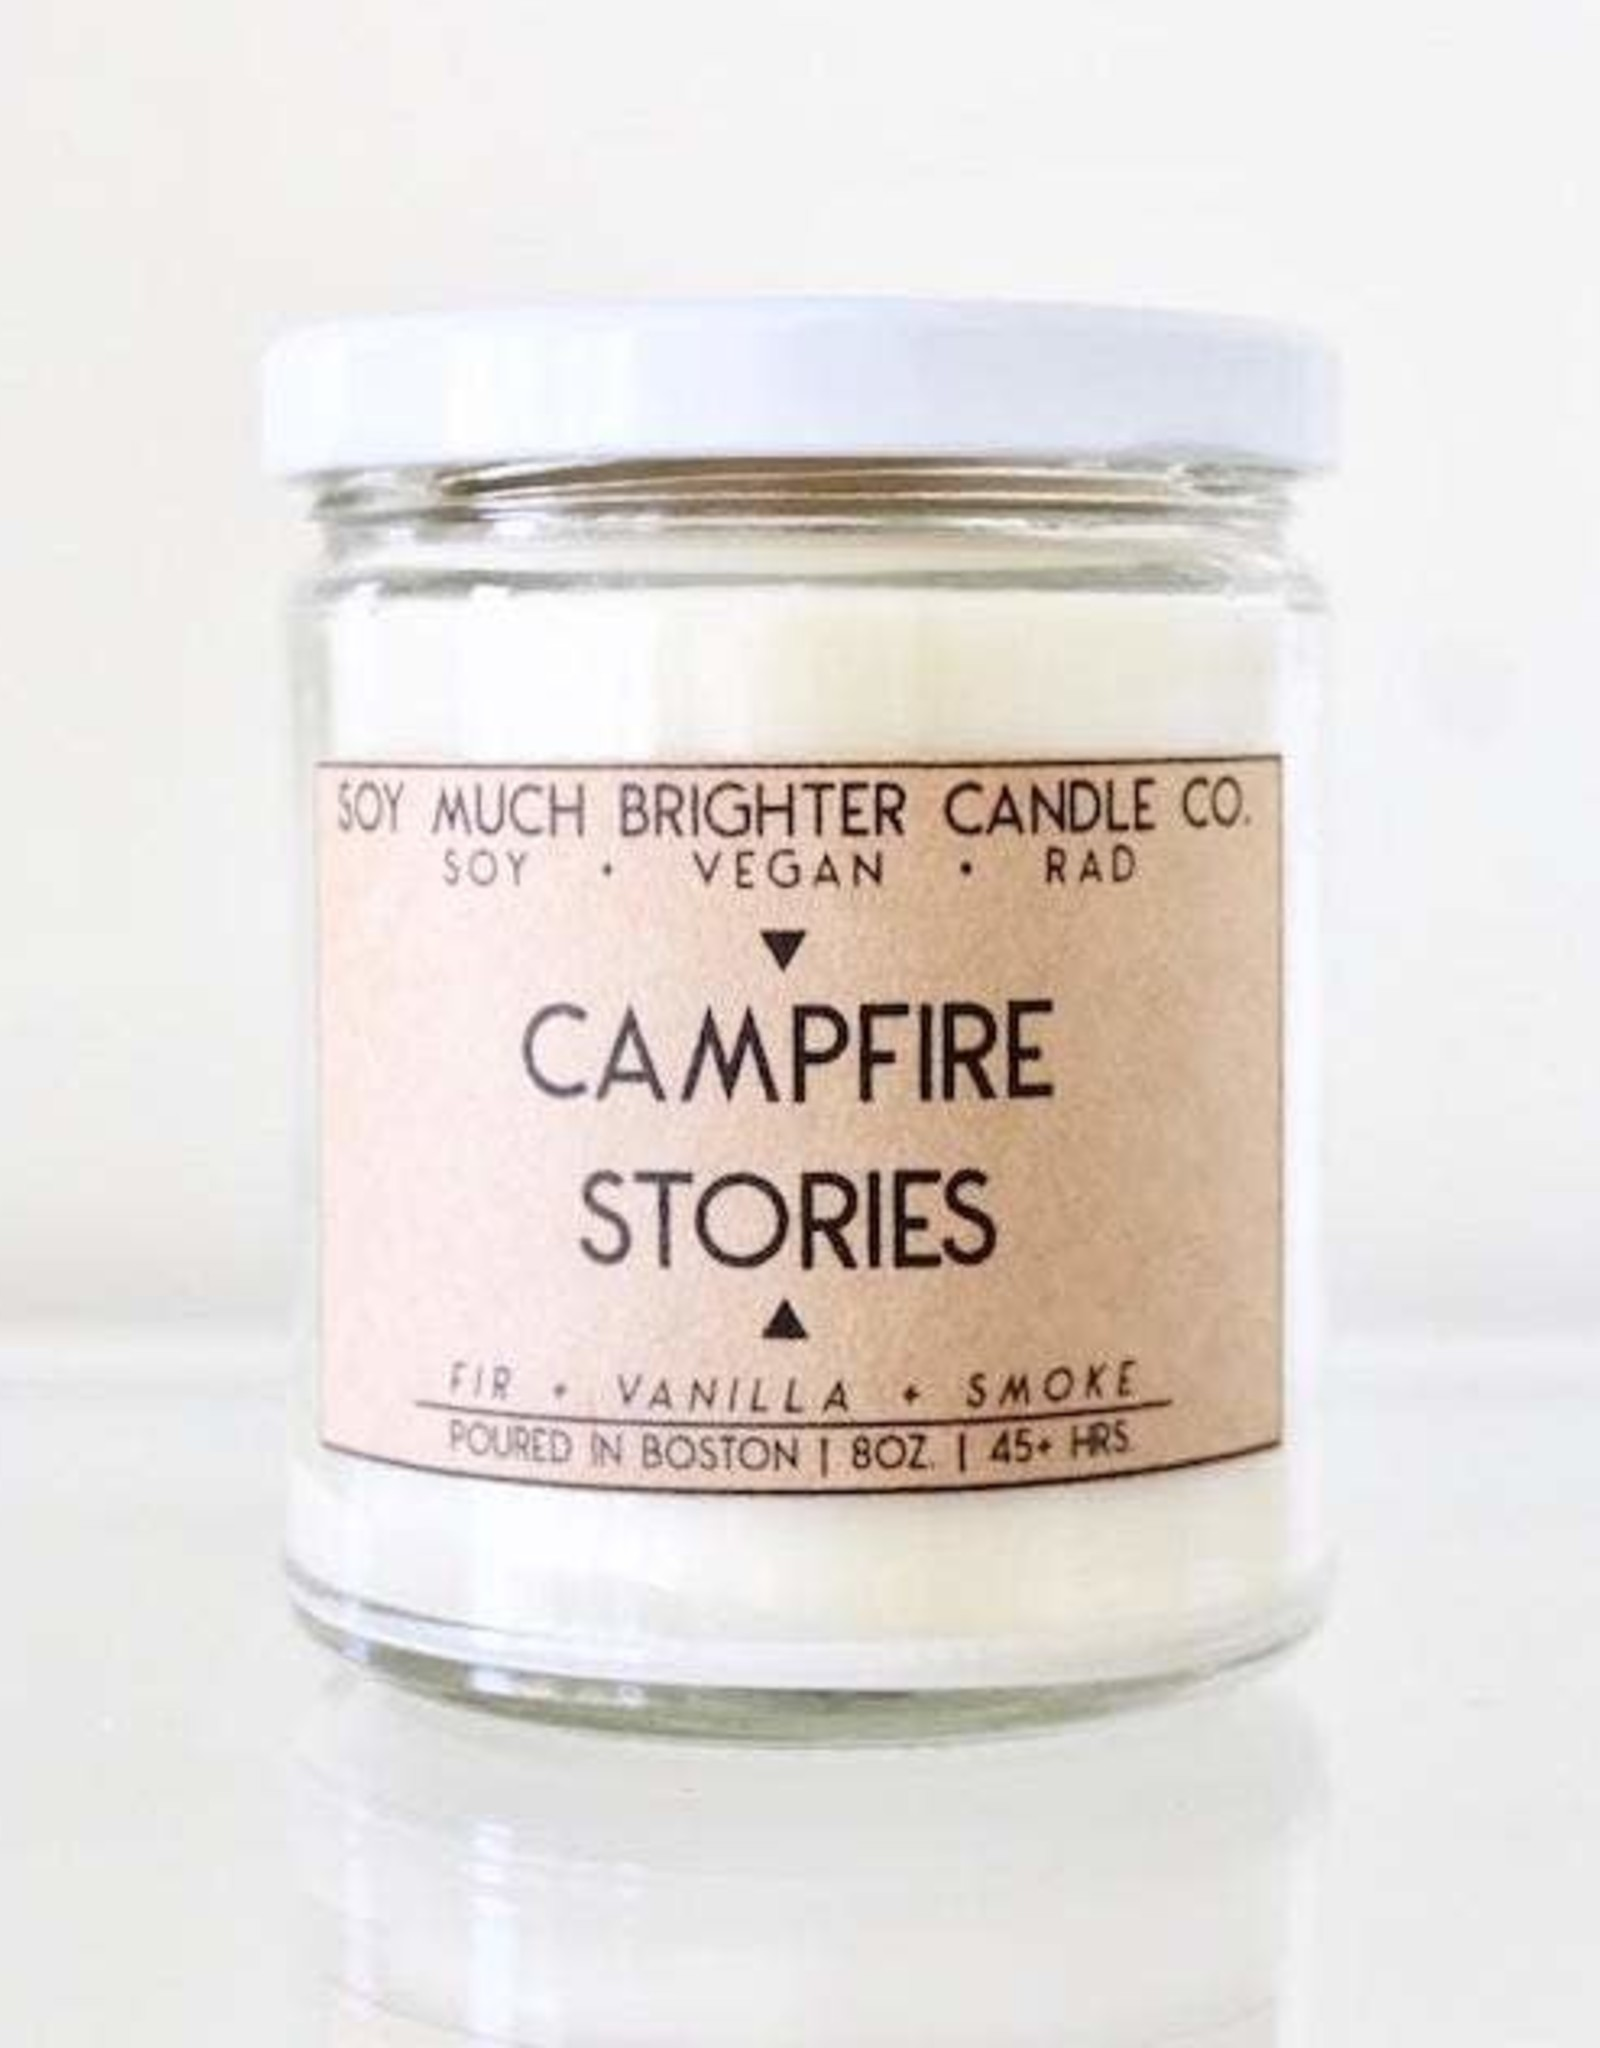 Soy Much Brighter Soy Much Brighter Candle  Campfire Stories 8oz